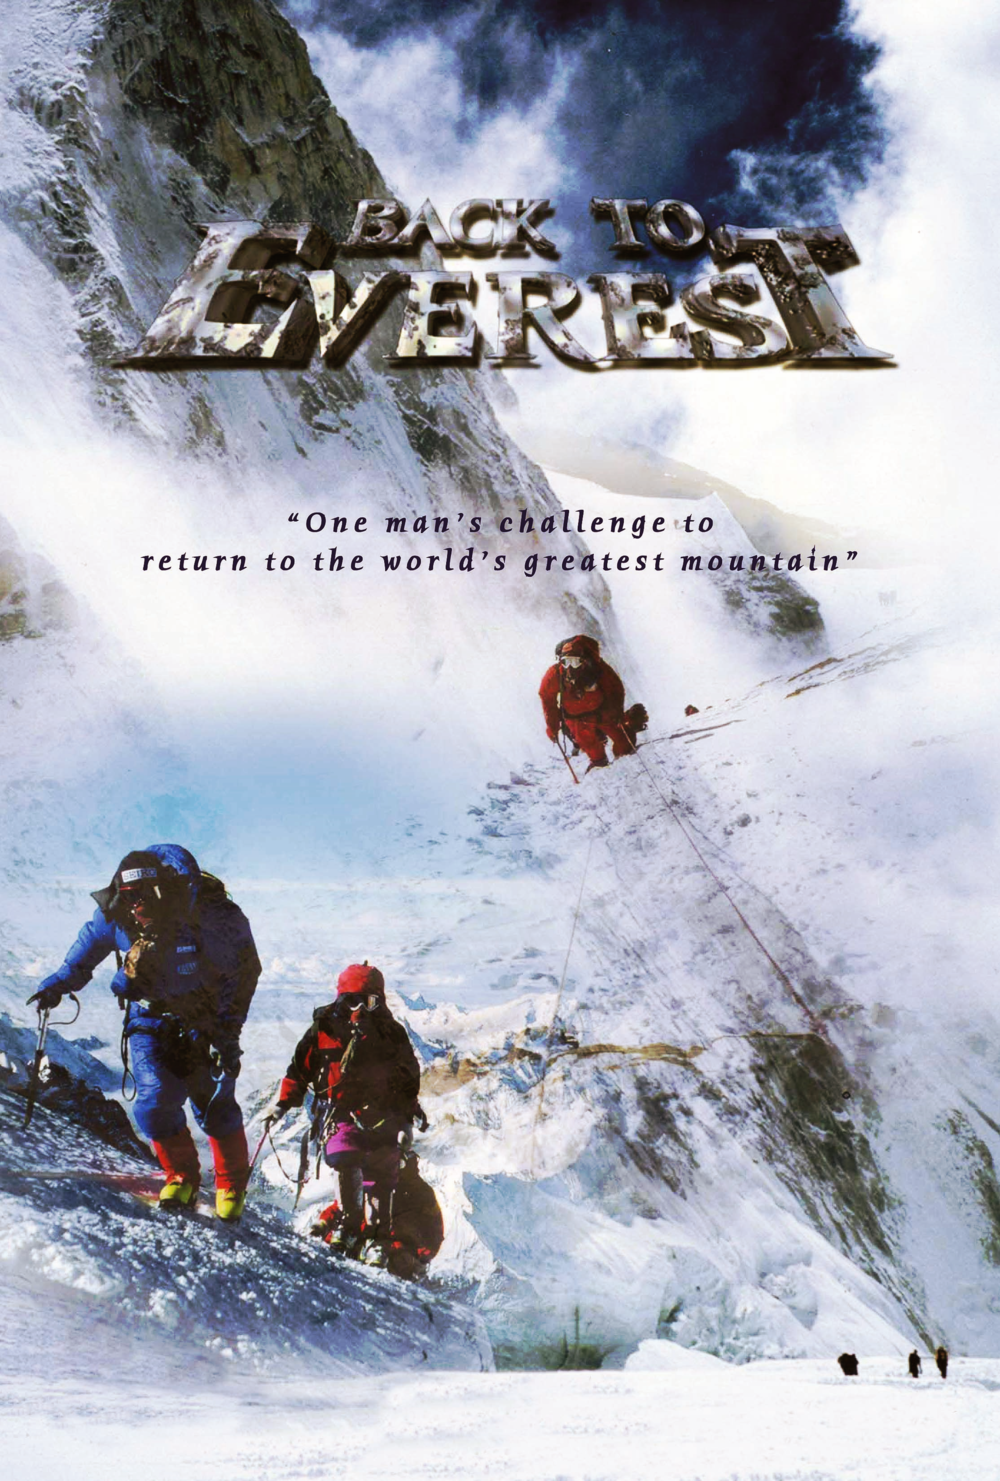 Back To Everest